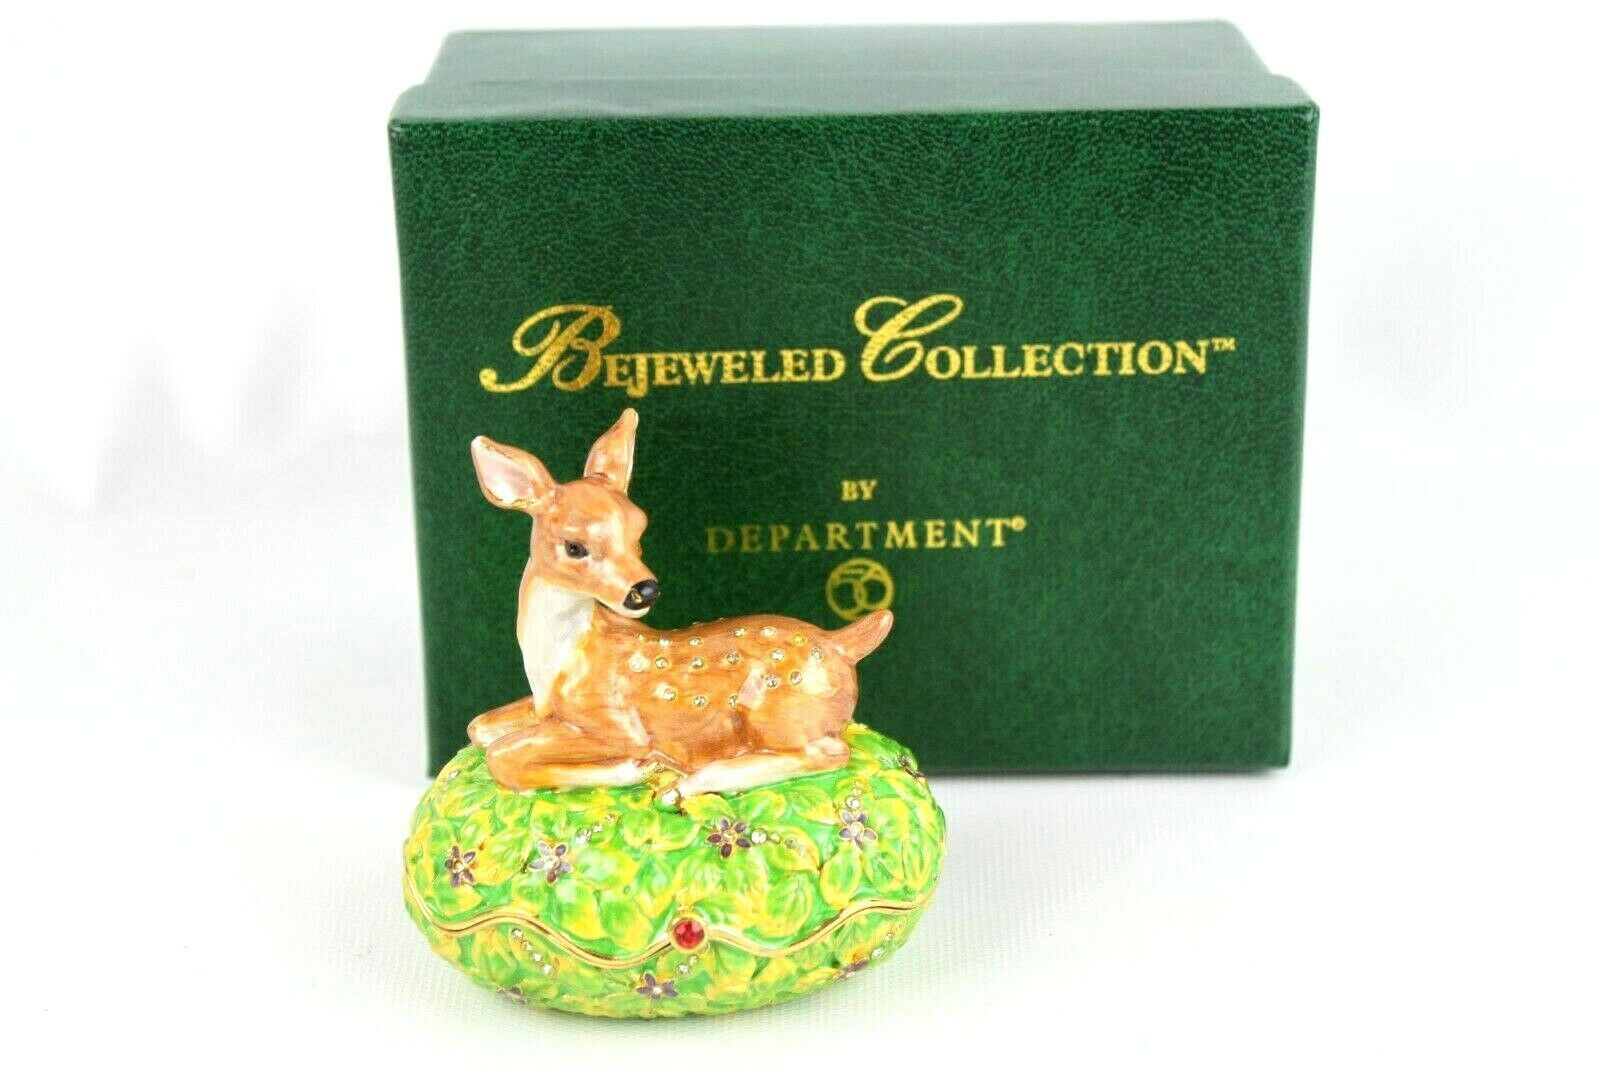 Primary image for Bejeweled Collection Department 56 Deer Jeweled Box